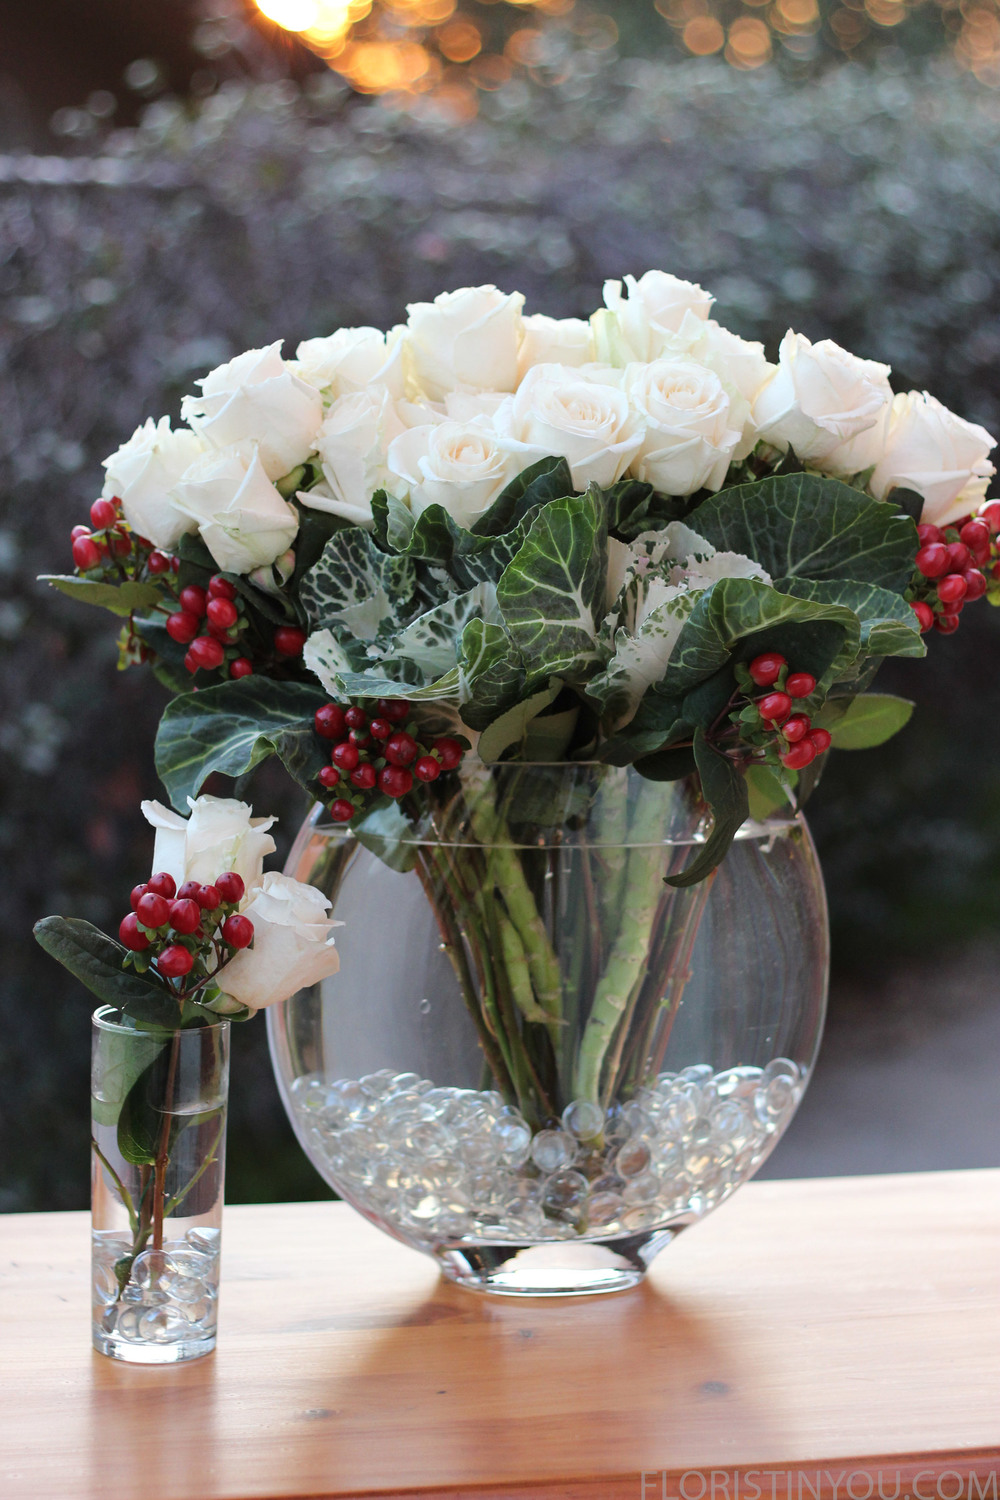 White Winter Roses Coffee Beans Floristinyou